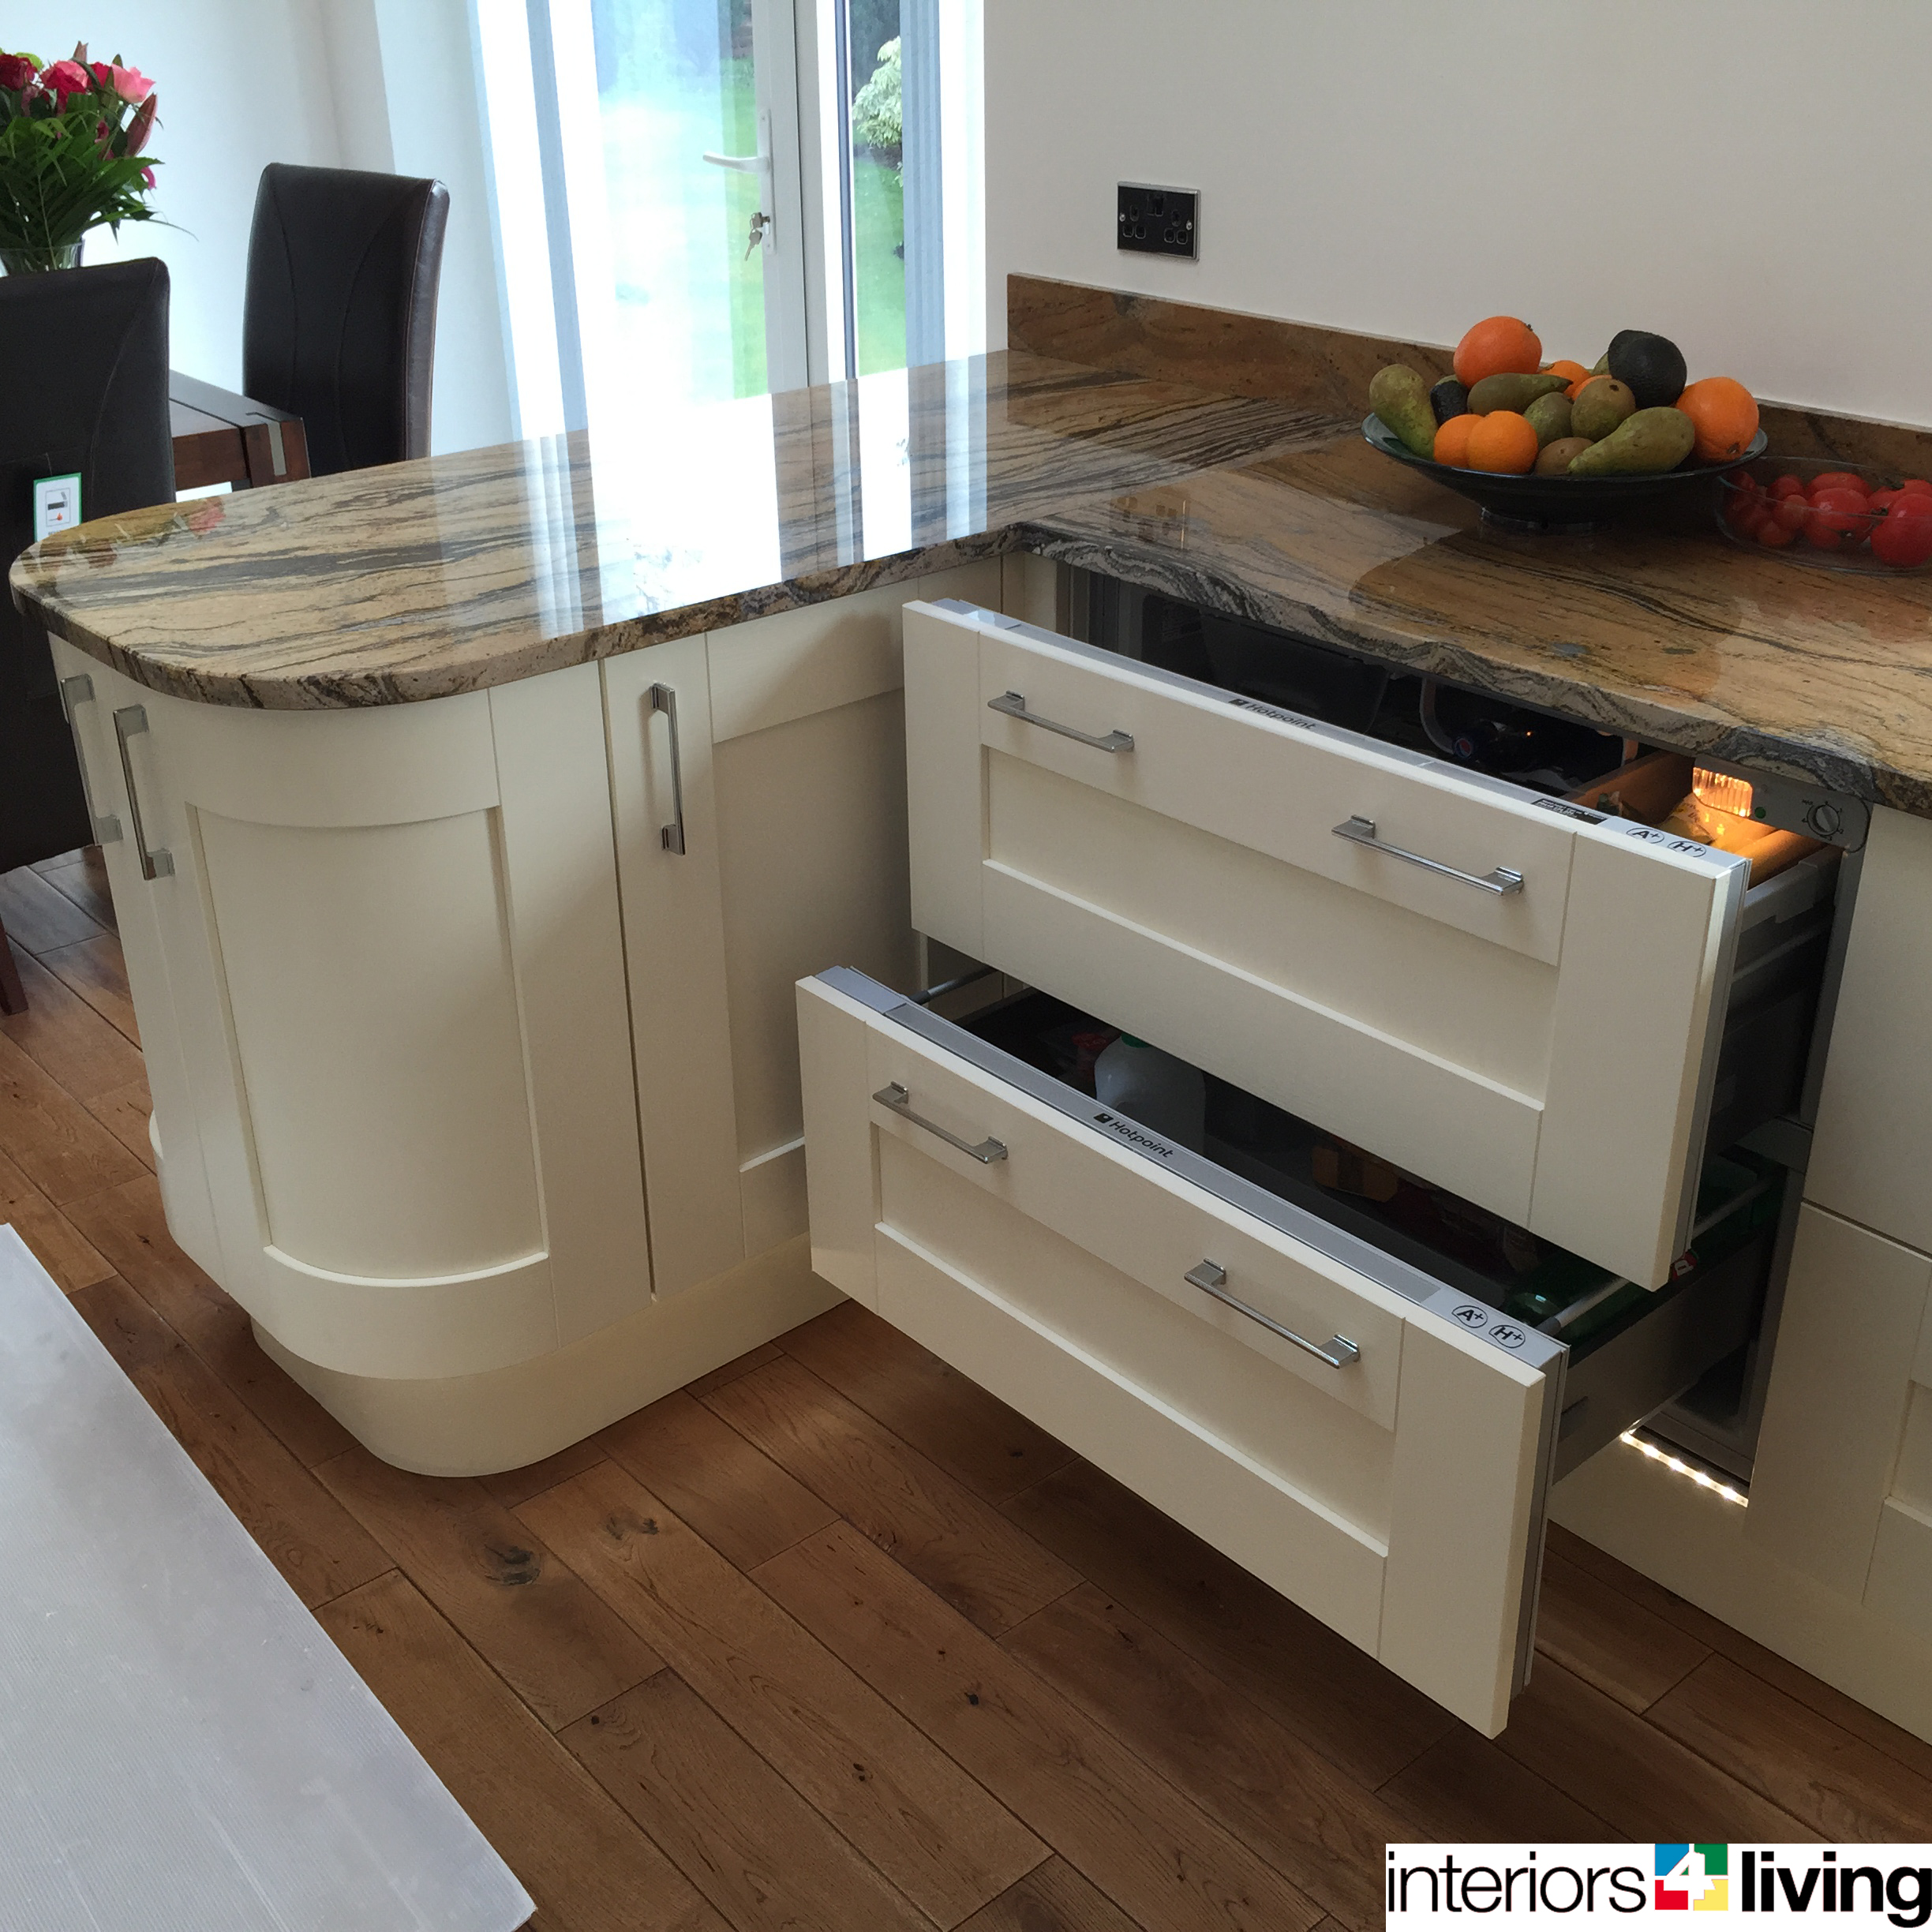 Kitchen Furniture Leeds: Interiors 4 Living